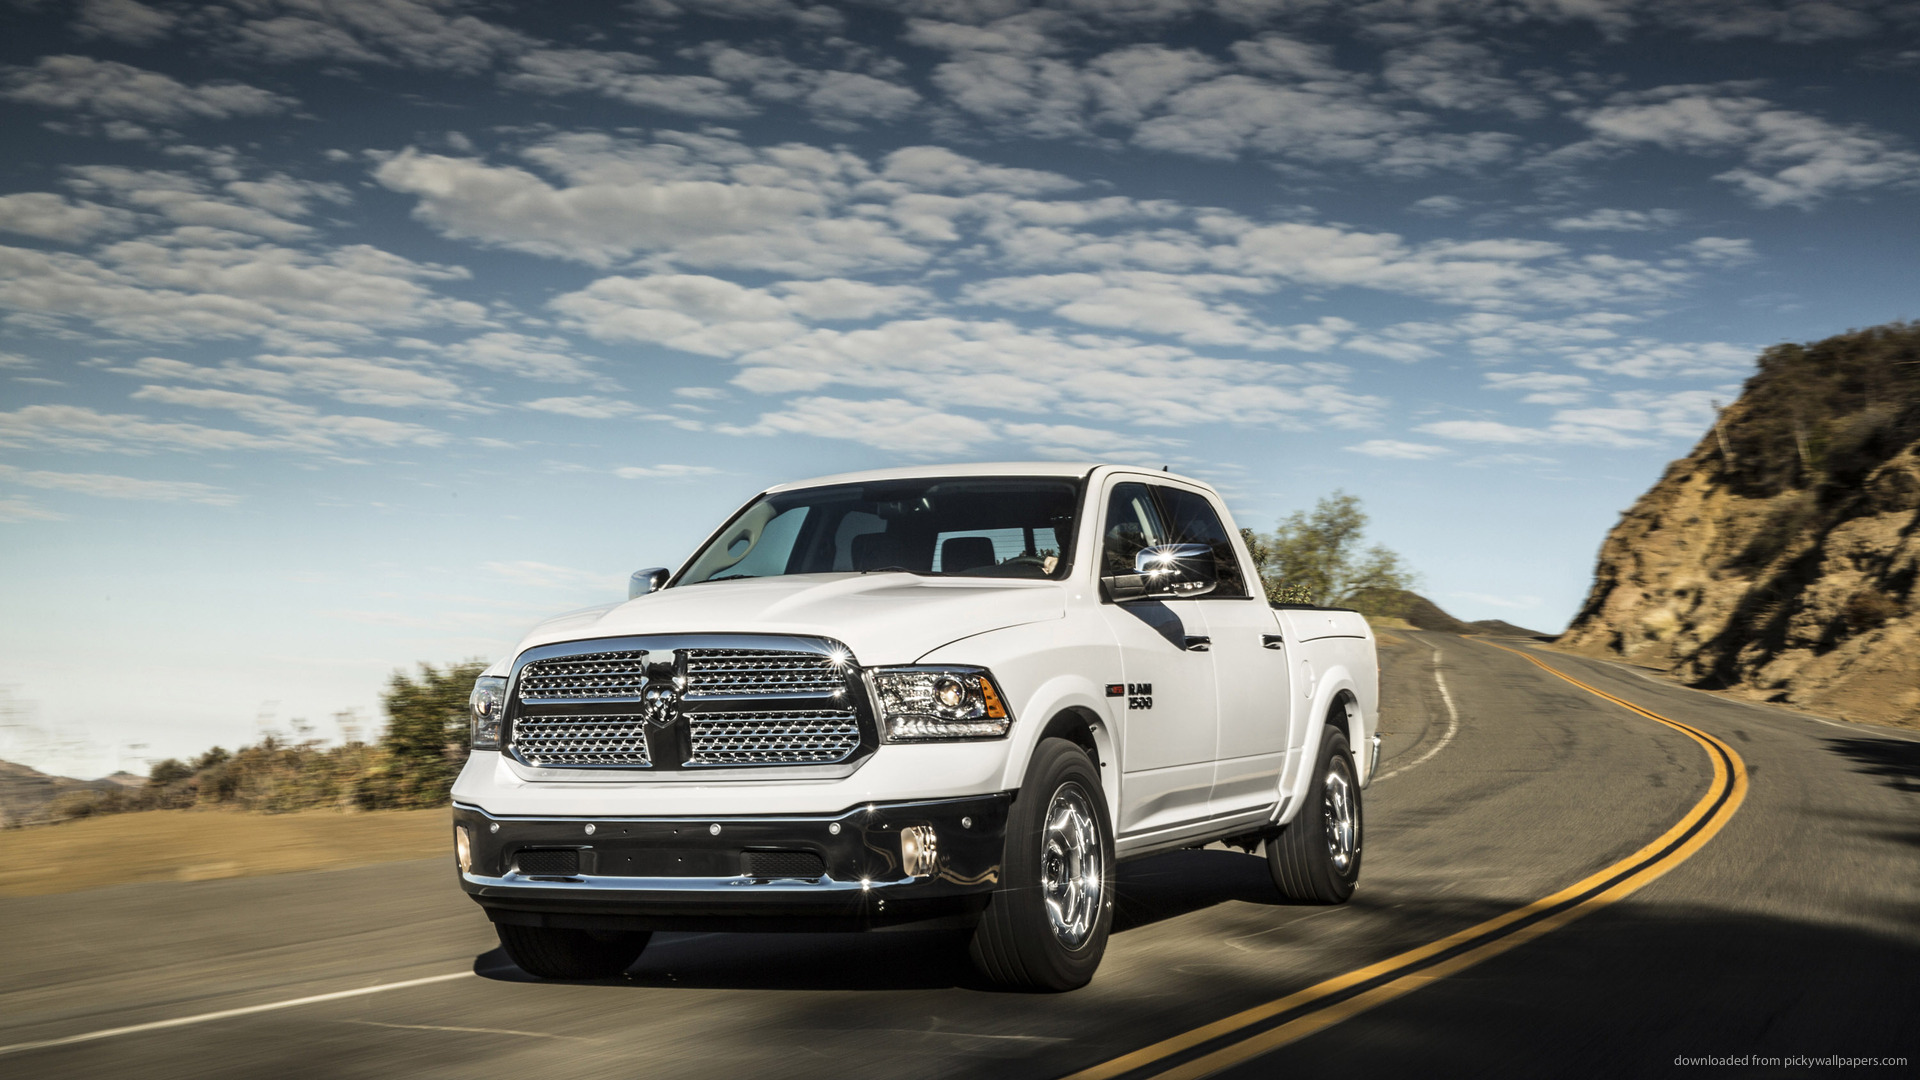 Dodge Ram 1500 Hd Wallpaper Background Image 1920x1080 Id 892407 Wallpaper Abyss